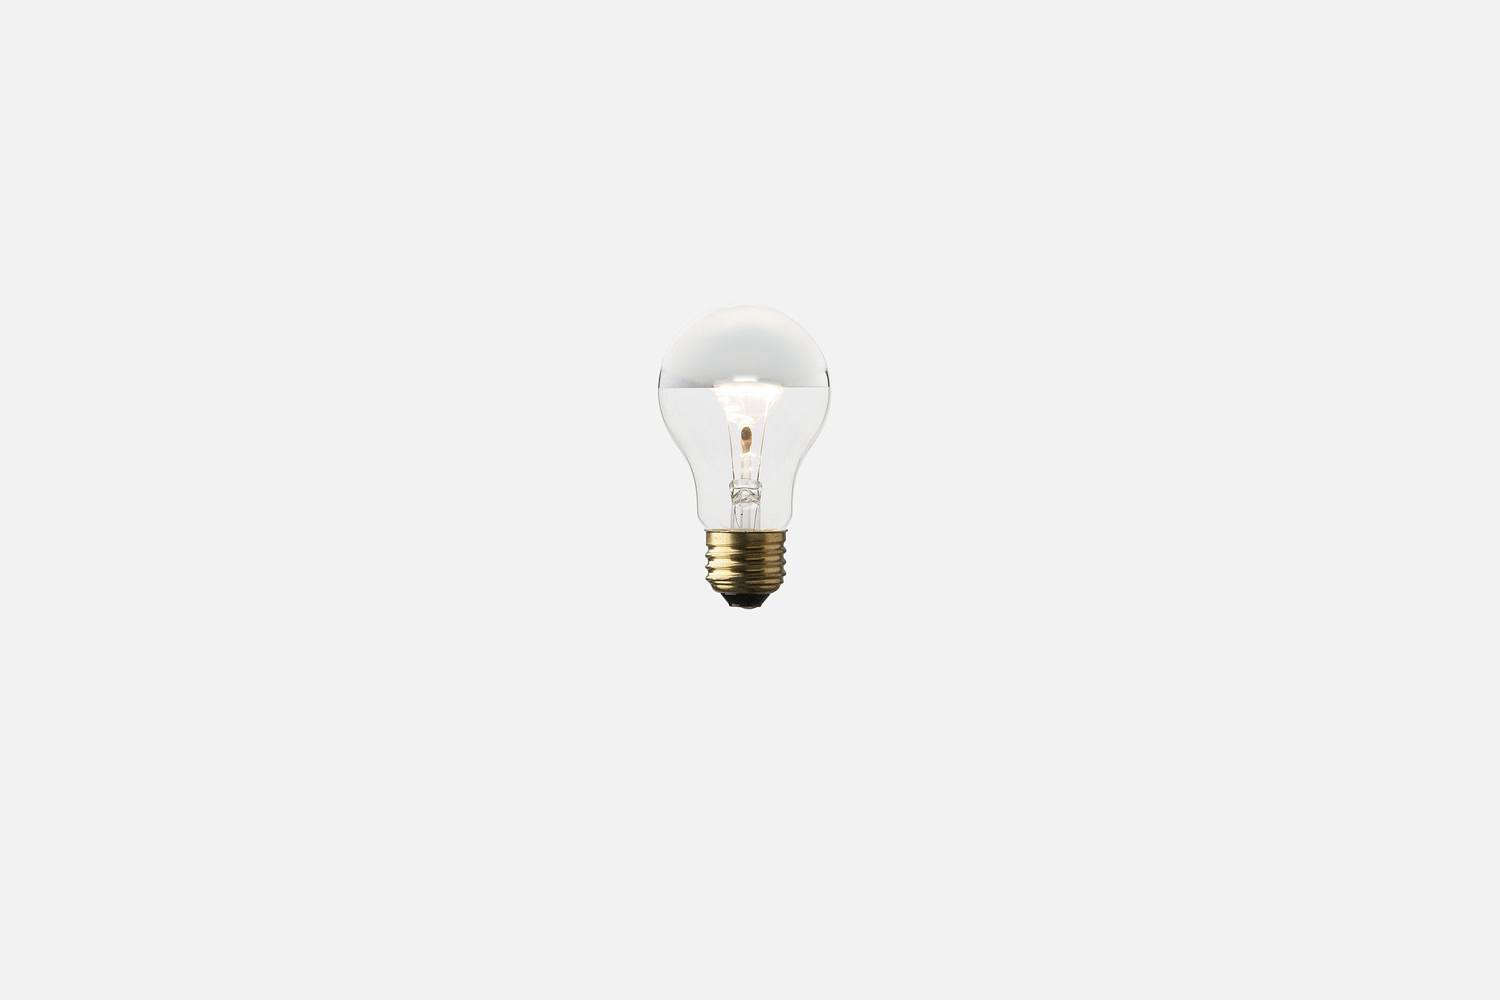 Pair the light with a Silver-Tipped Bulb for $8 from Schoolhouse Electric.